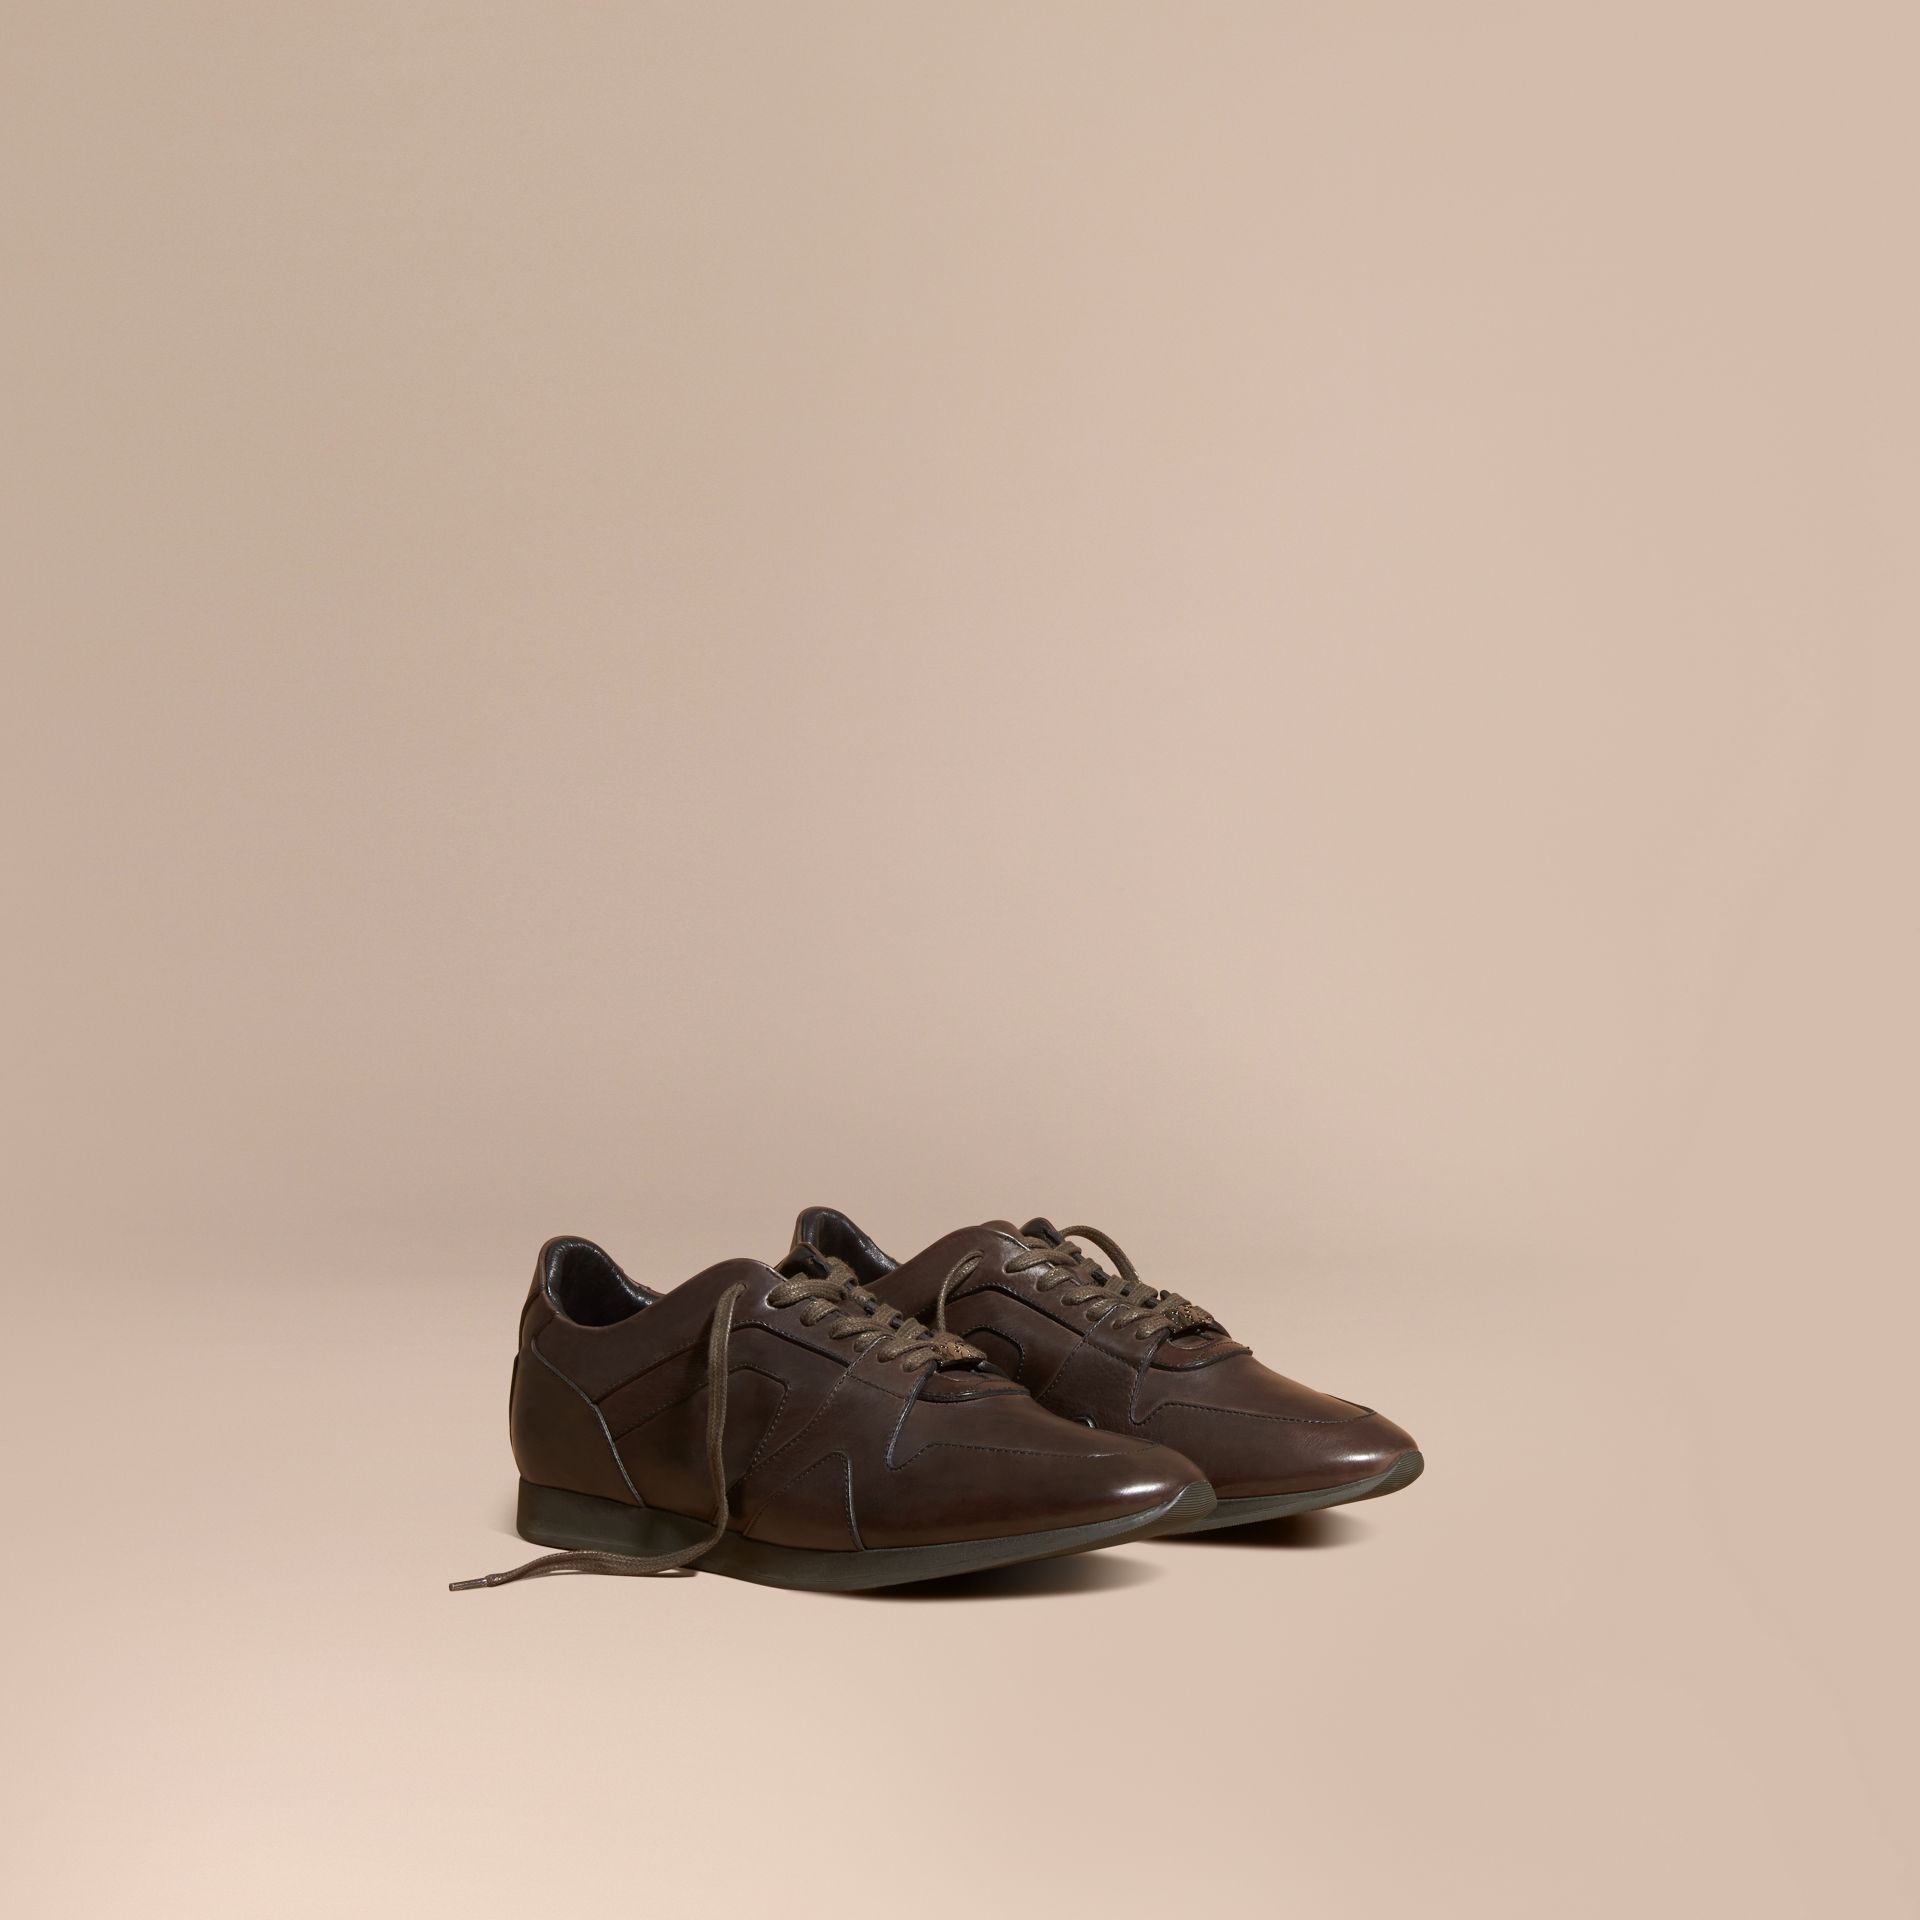 Peppercorn The Field Sneaker in Leather Peppercorn - gallery image 1